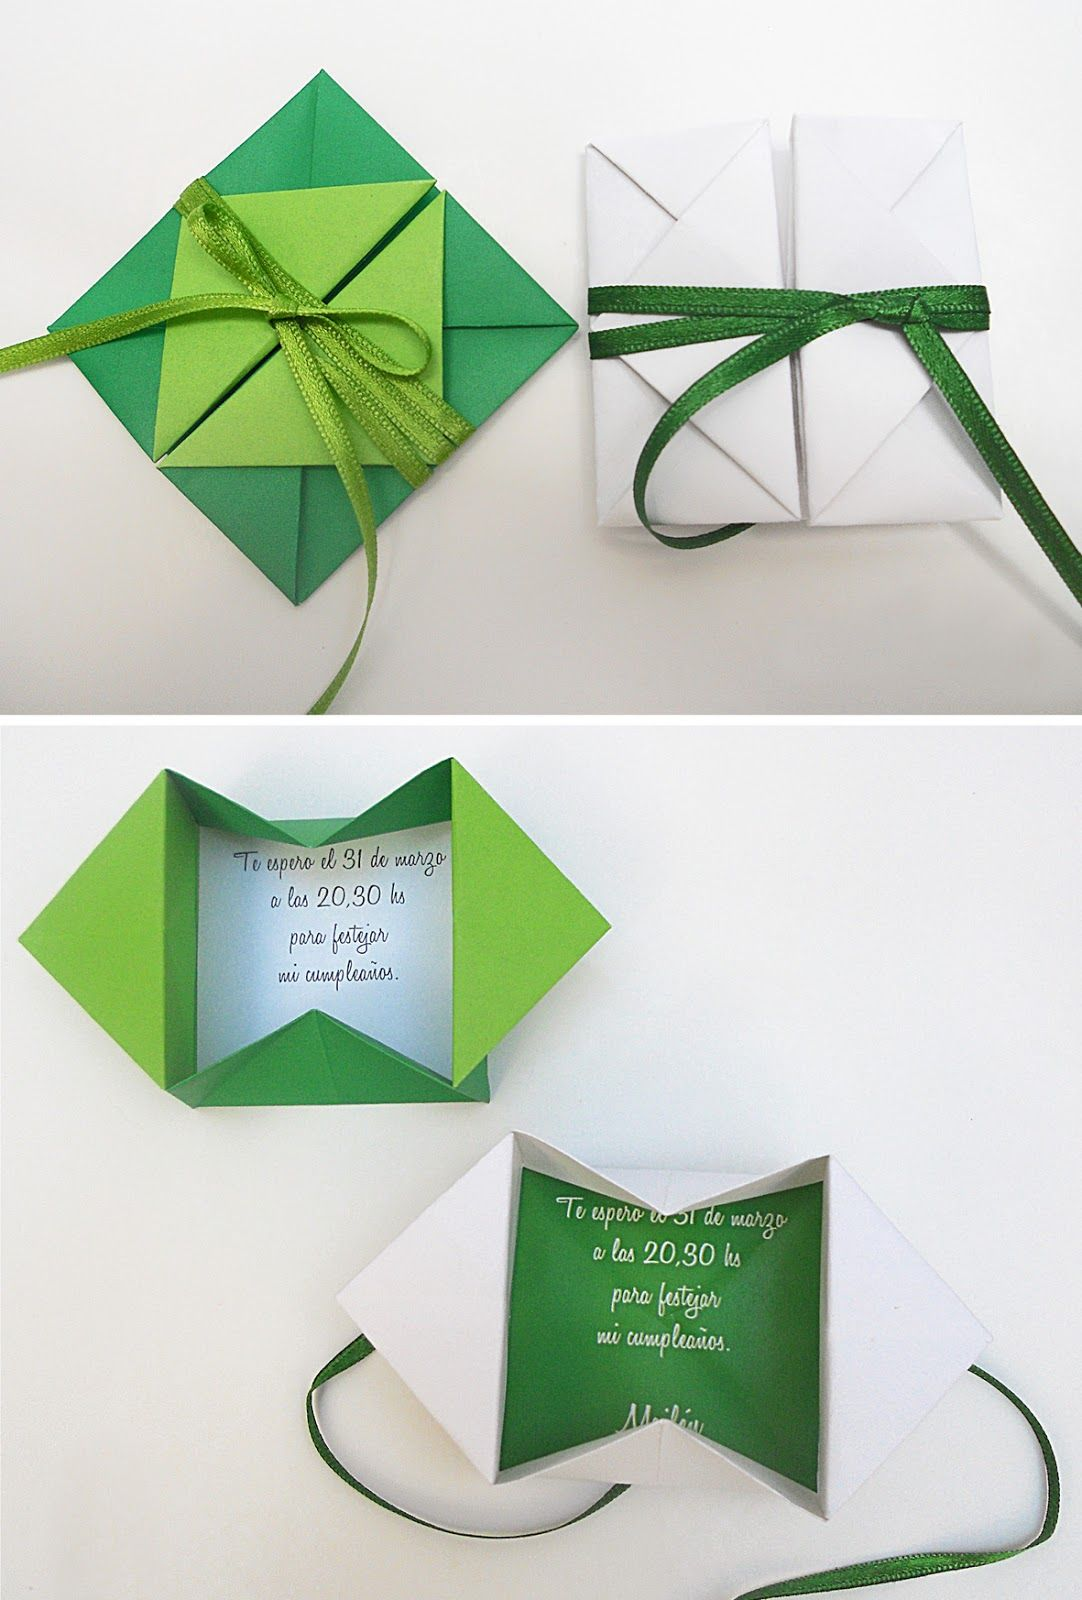 Square Origami Envelopes For Wedding Invitations When They Are